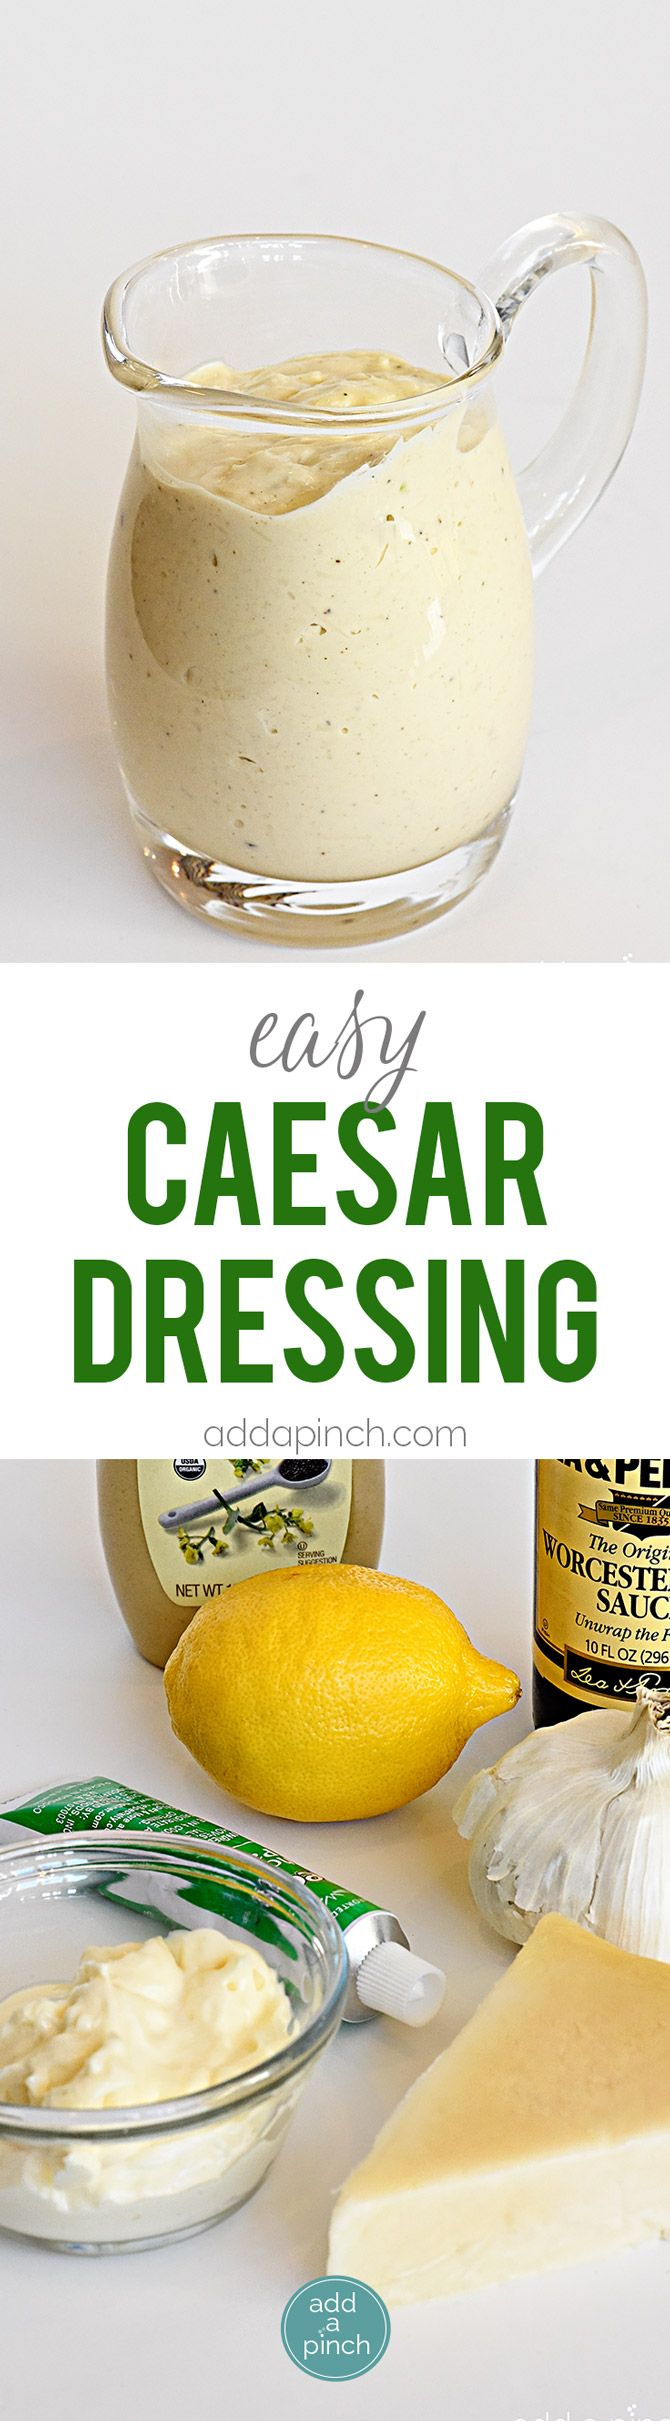 Leckeres Ceasar Dressing ganz einfach selber machen - Peppt jeden Salat auf *** Easy Caesar Dressing is creamy and delicious! A restaurant-style caesar salad dressing made at home with just a few ingredients!